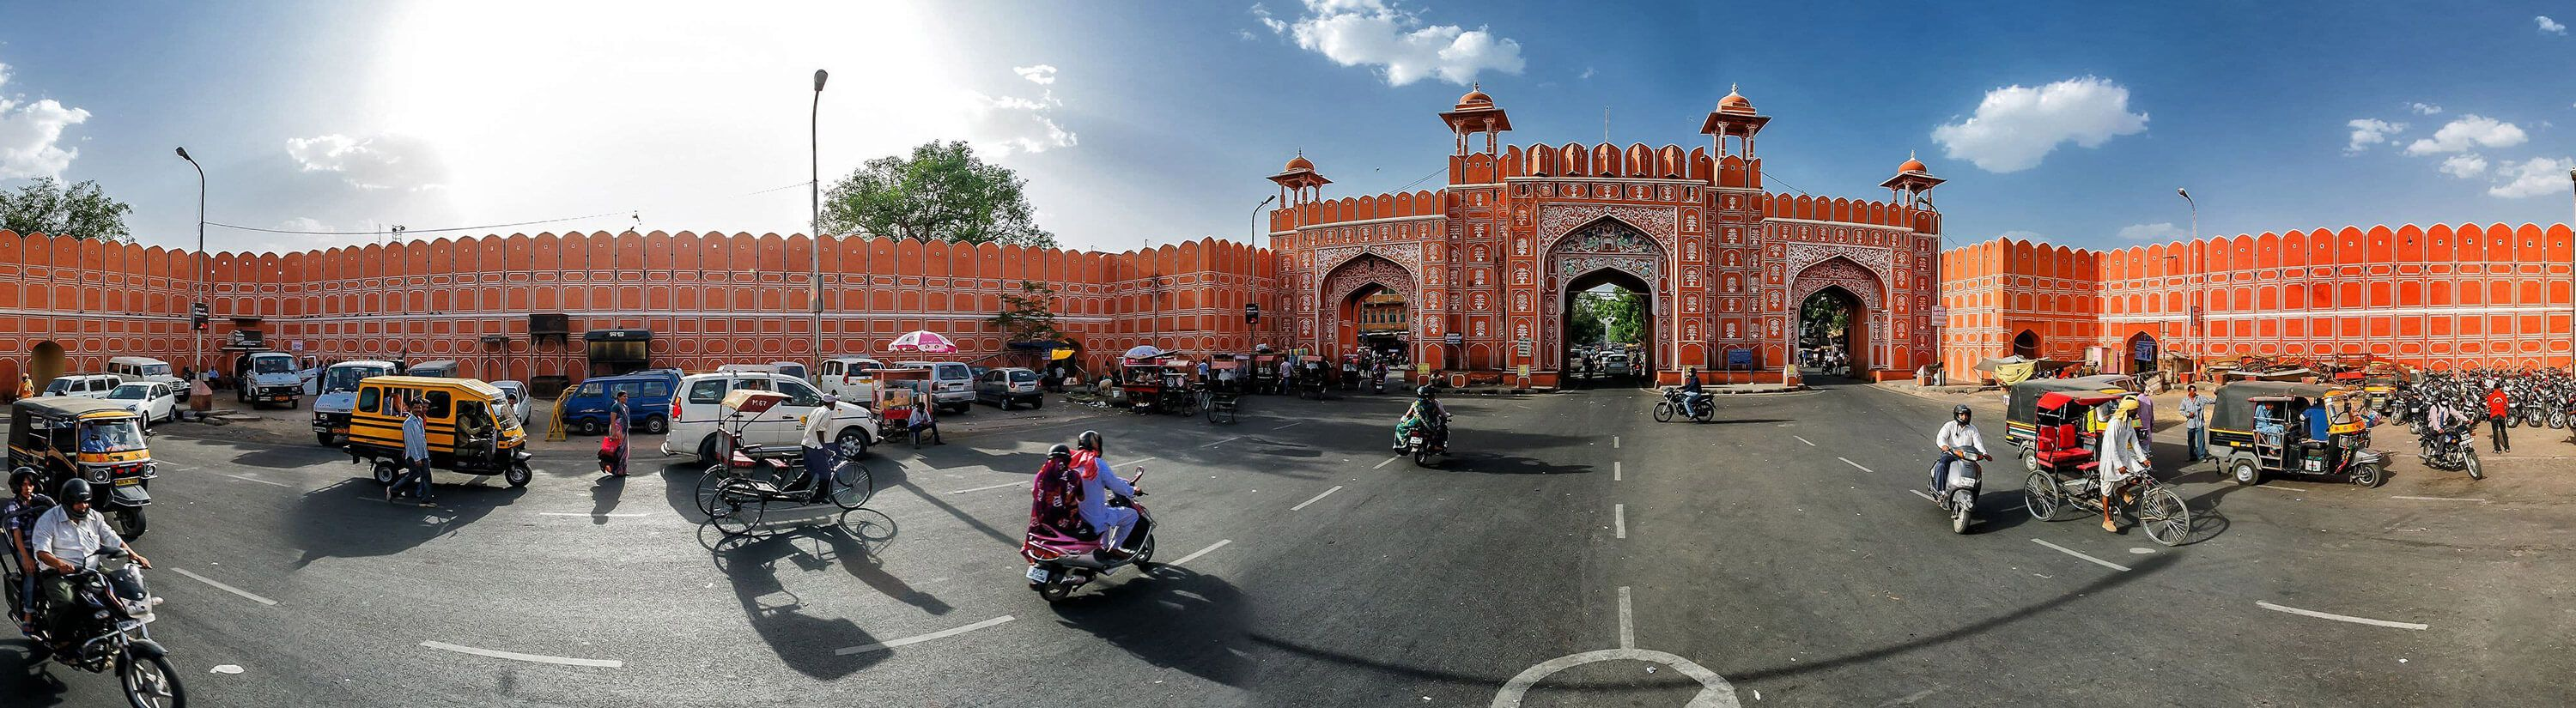 Jaipur Pink City Gate